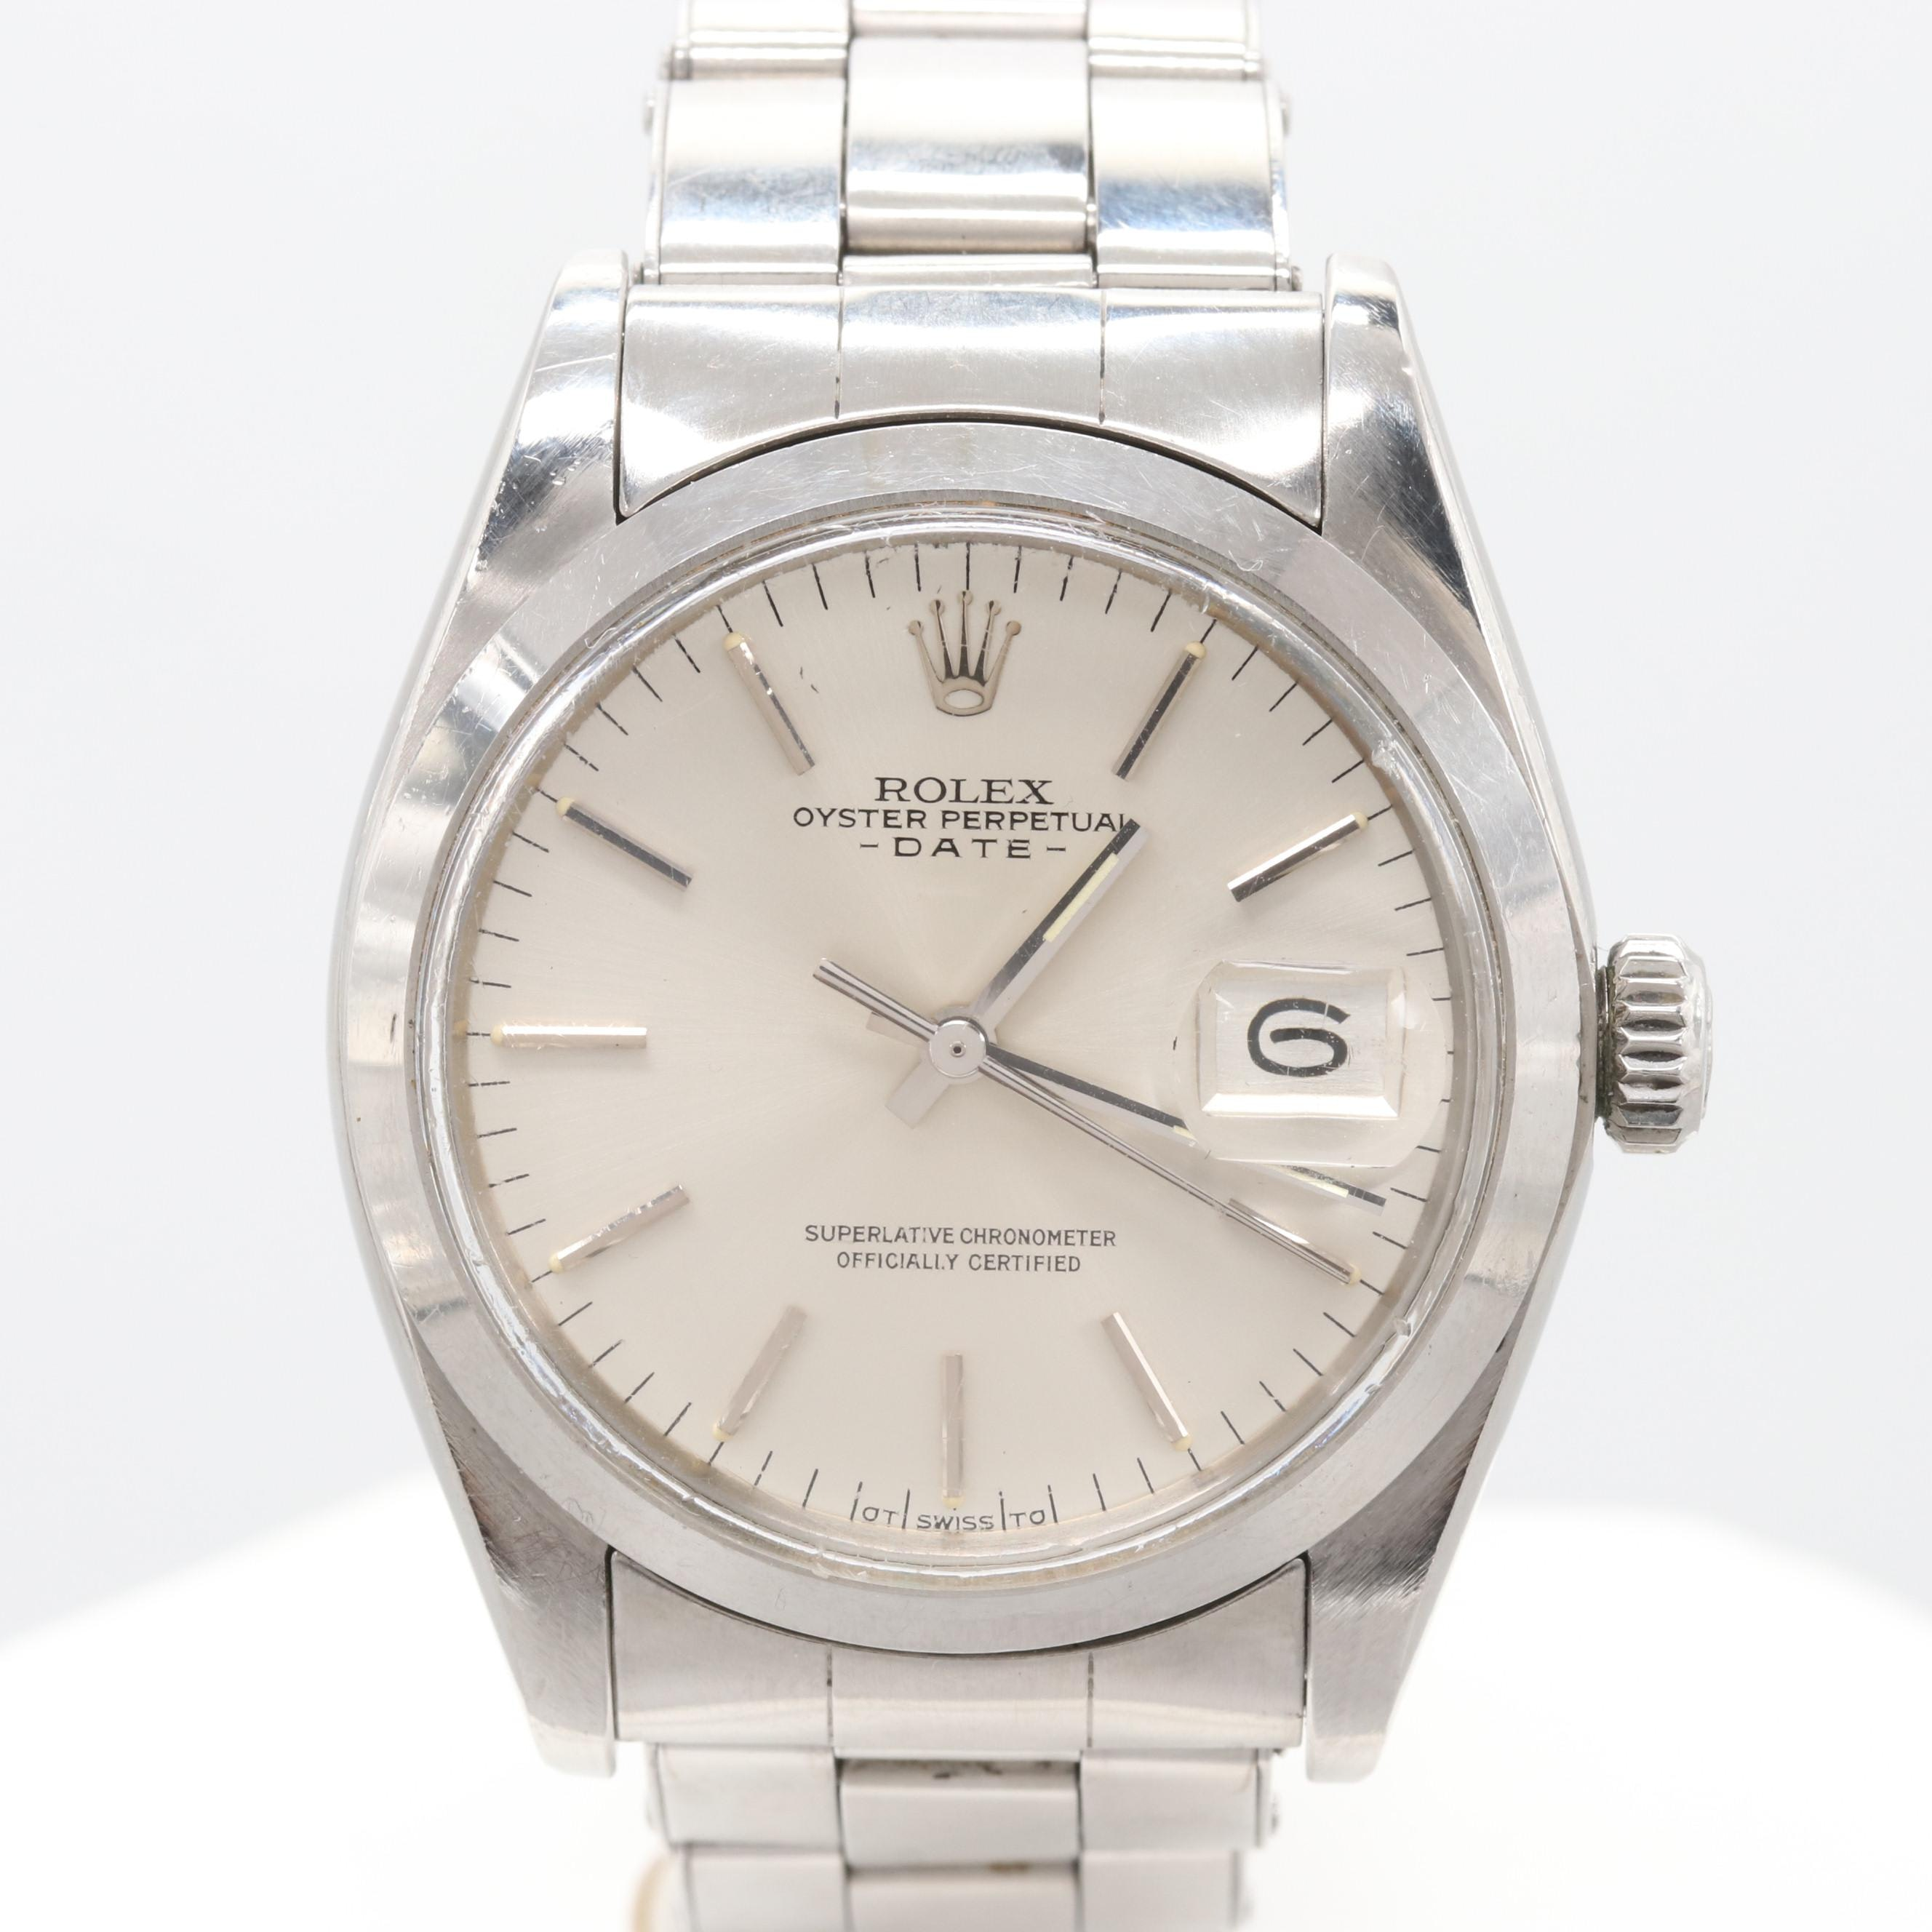 Vintage Rolex Oyster Perpetual Date 1500 Wristwatch